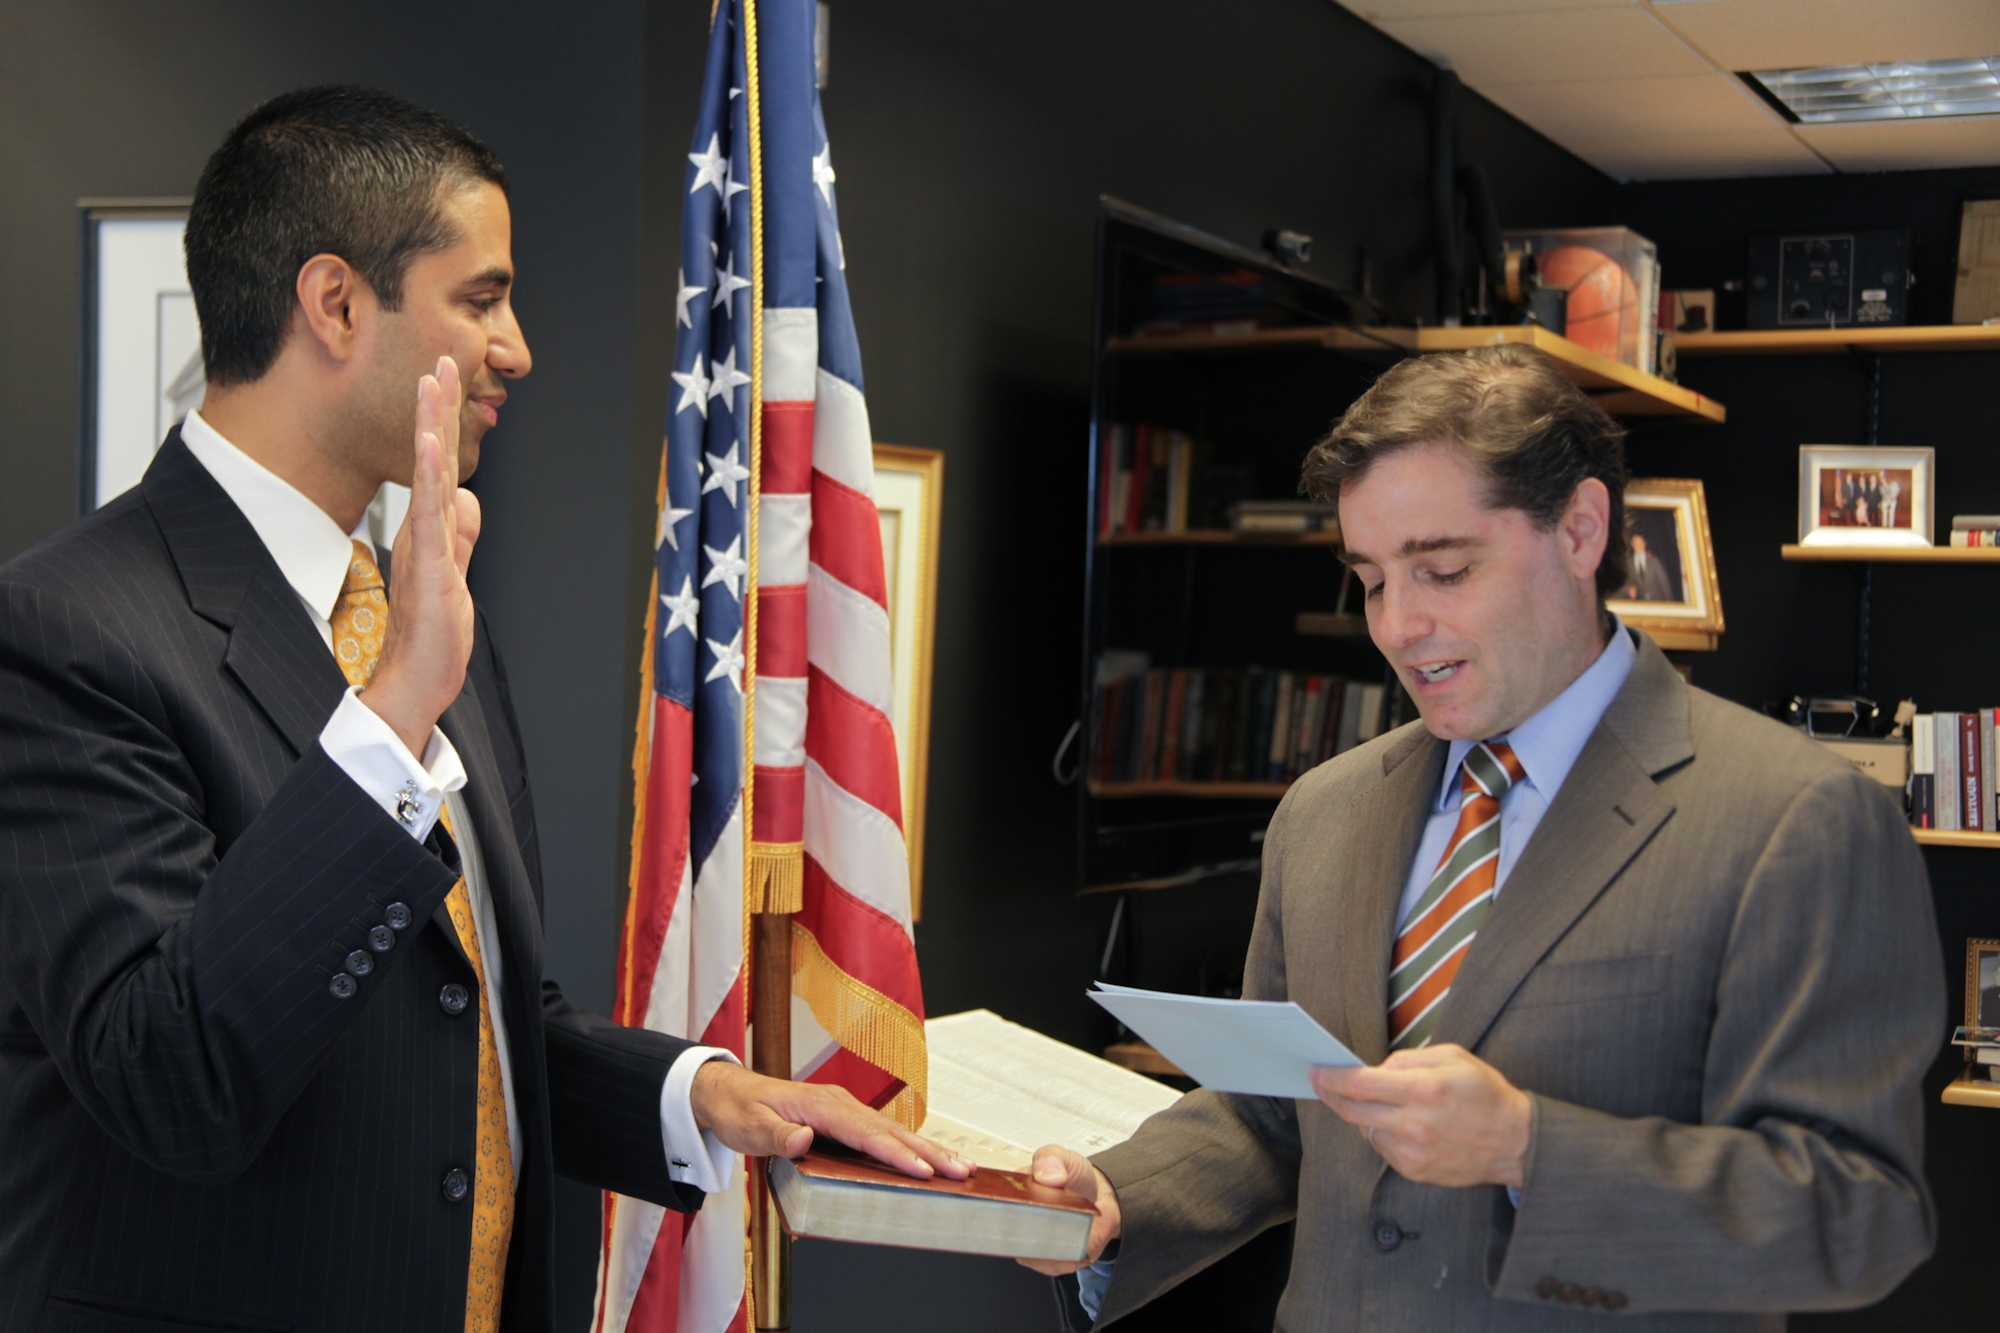 FCC Chairman Genachowski swearing in Ajit Pai as the new Commissioner at the FCC headquarters in Washington, DC.  May 14, 2012. [Federal Communications Commission Photo]